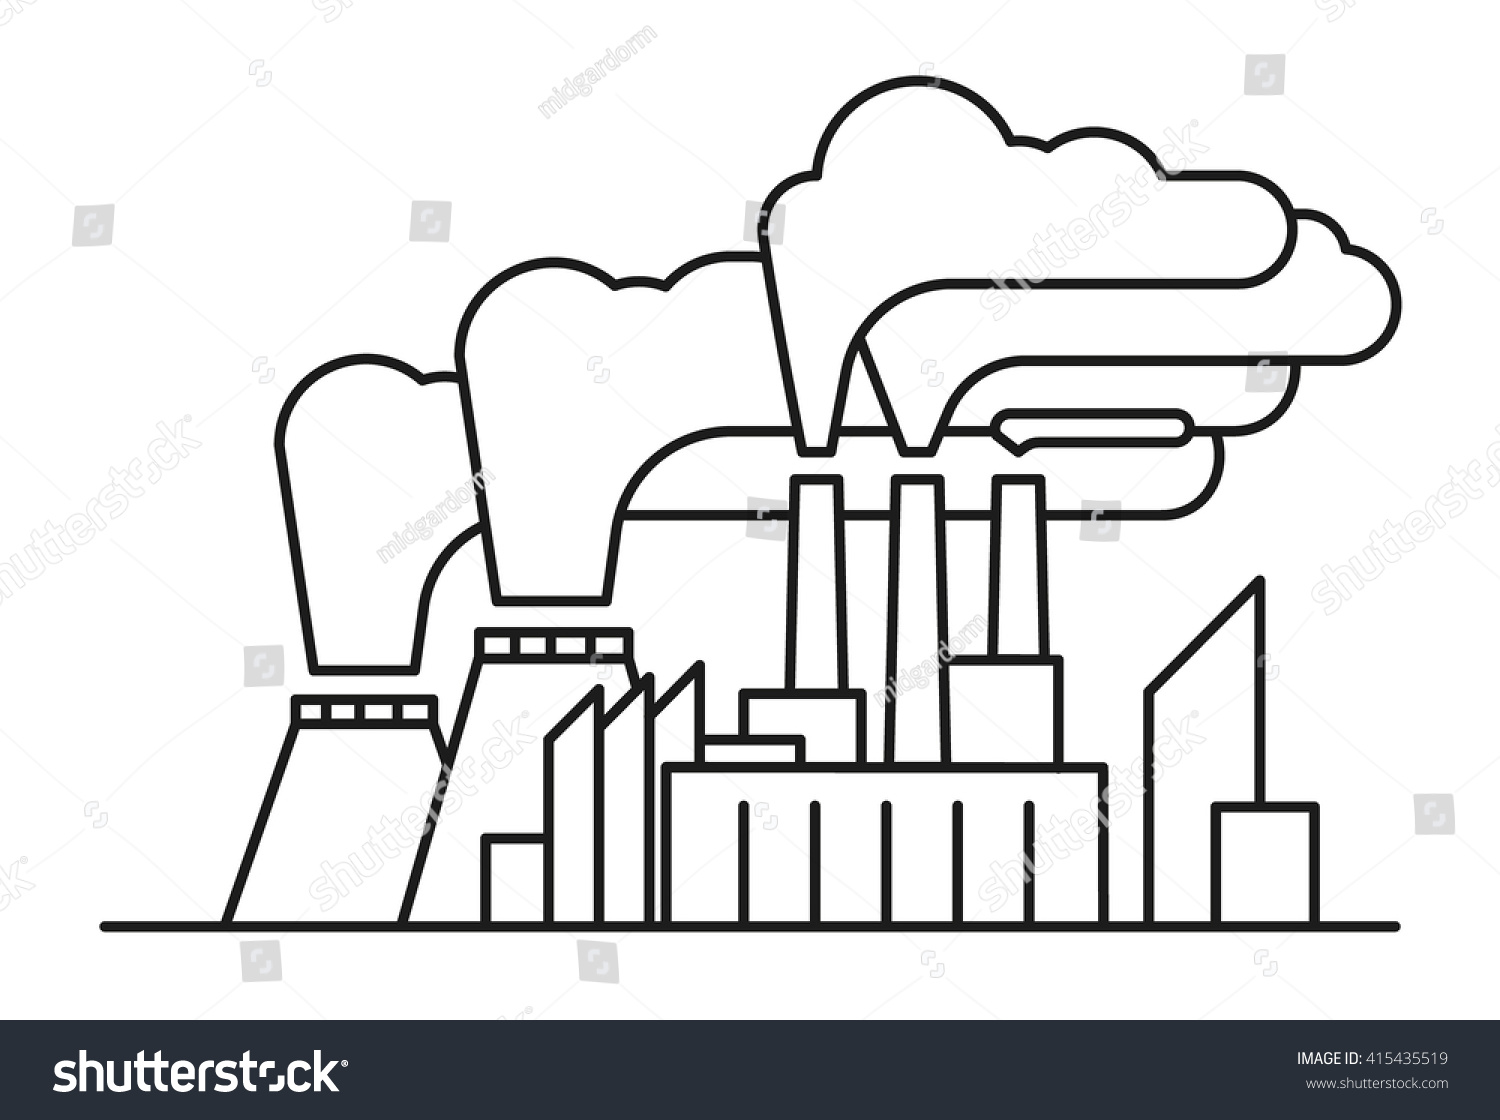 Line art illustration of poisonous air pollution with industrial waste line art ecological concept with